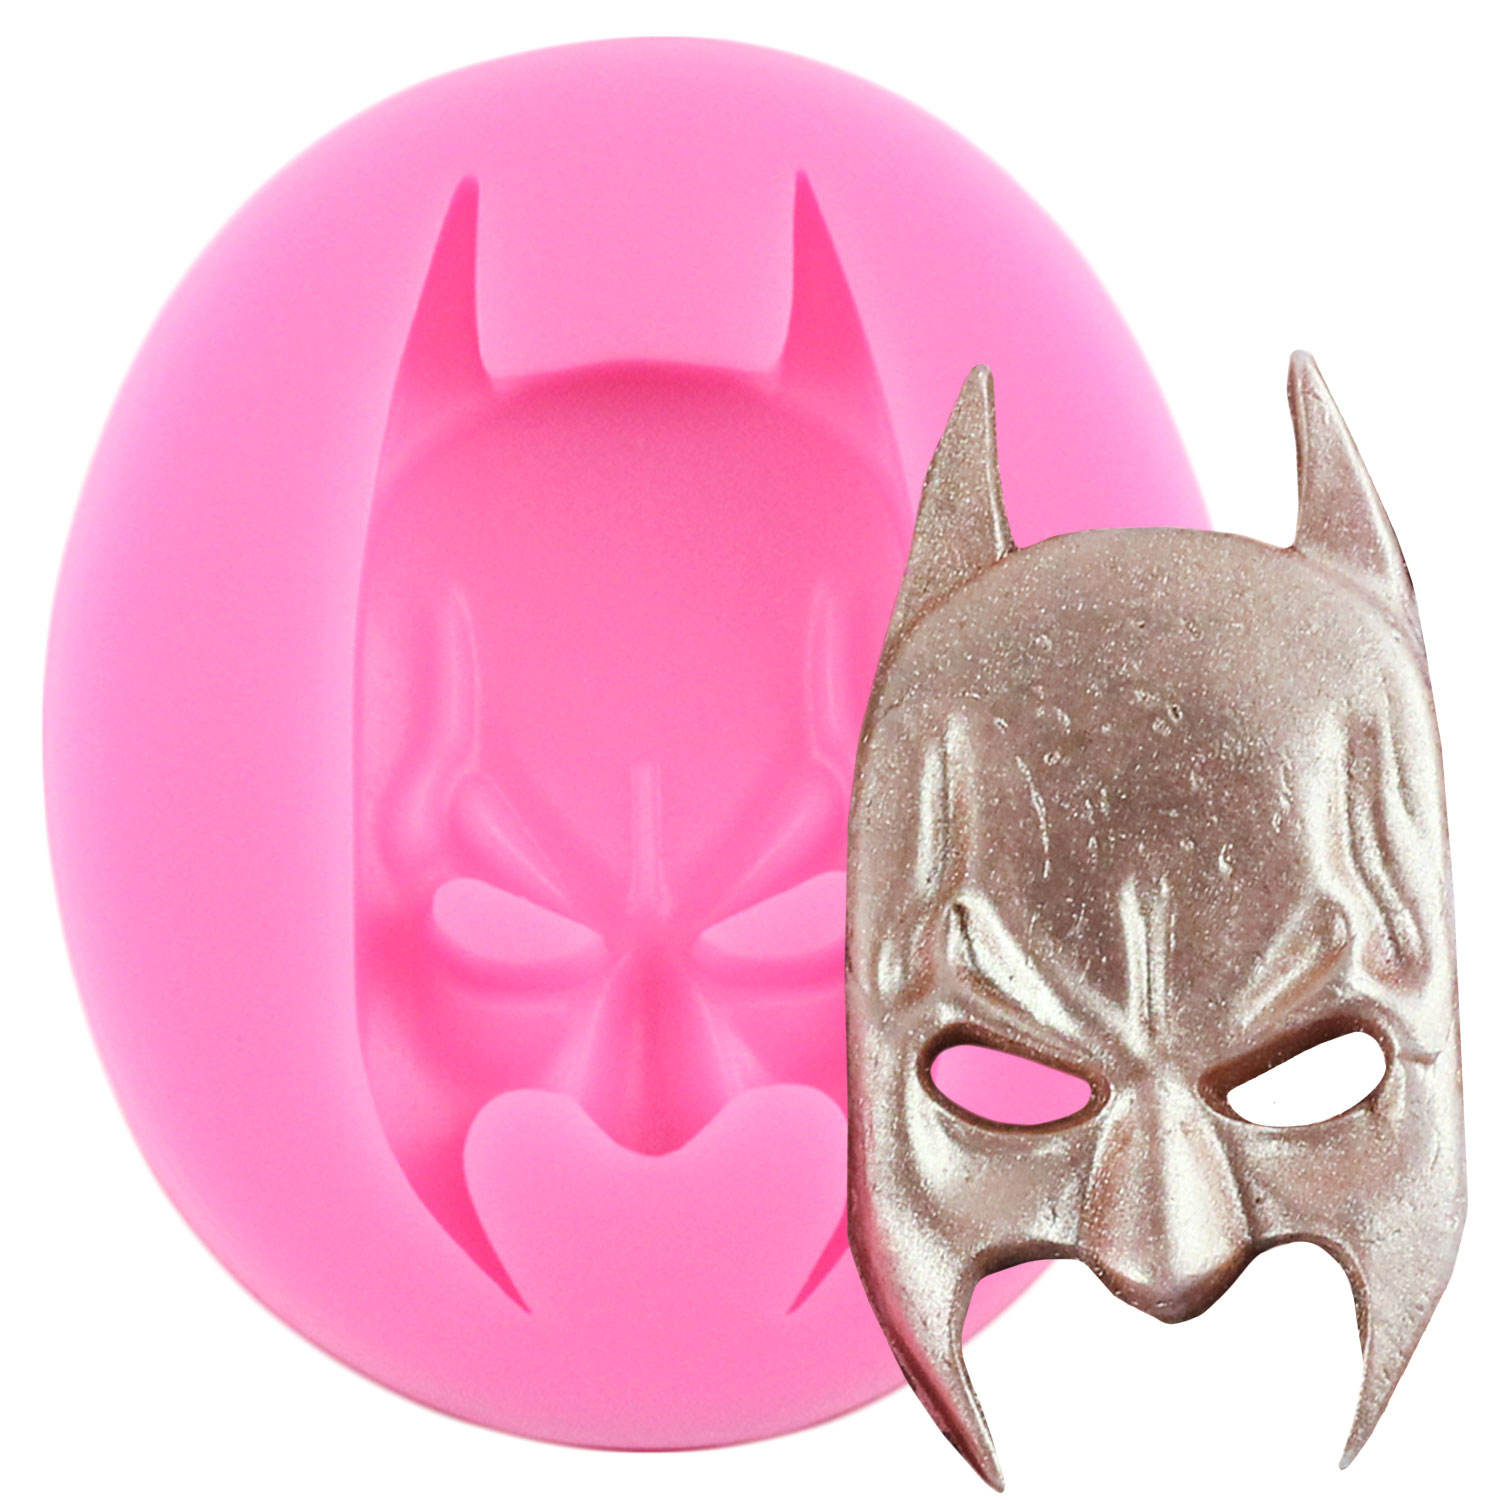 3D Superman Spiderman Batman Silicone Molds Fondant Chocolate Candy Clay Mold Face Silicone Cake Mold Cake Decorating Tools